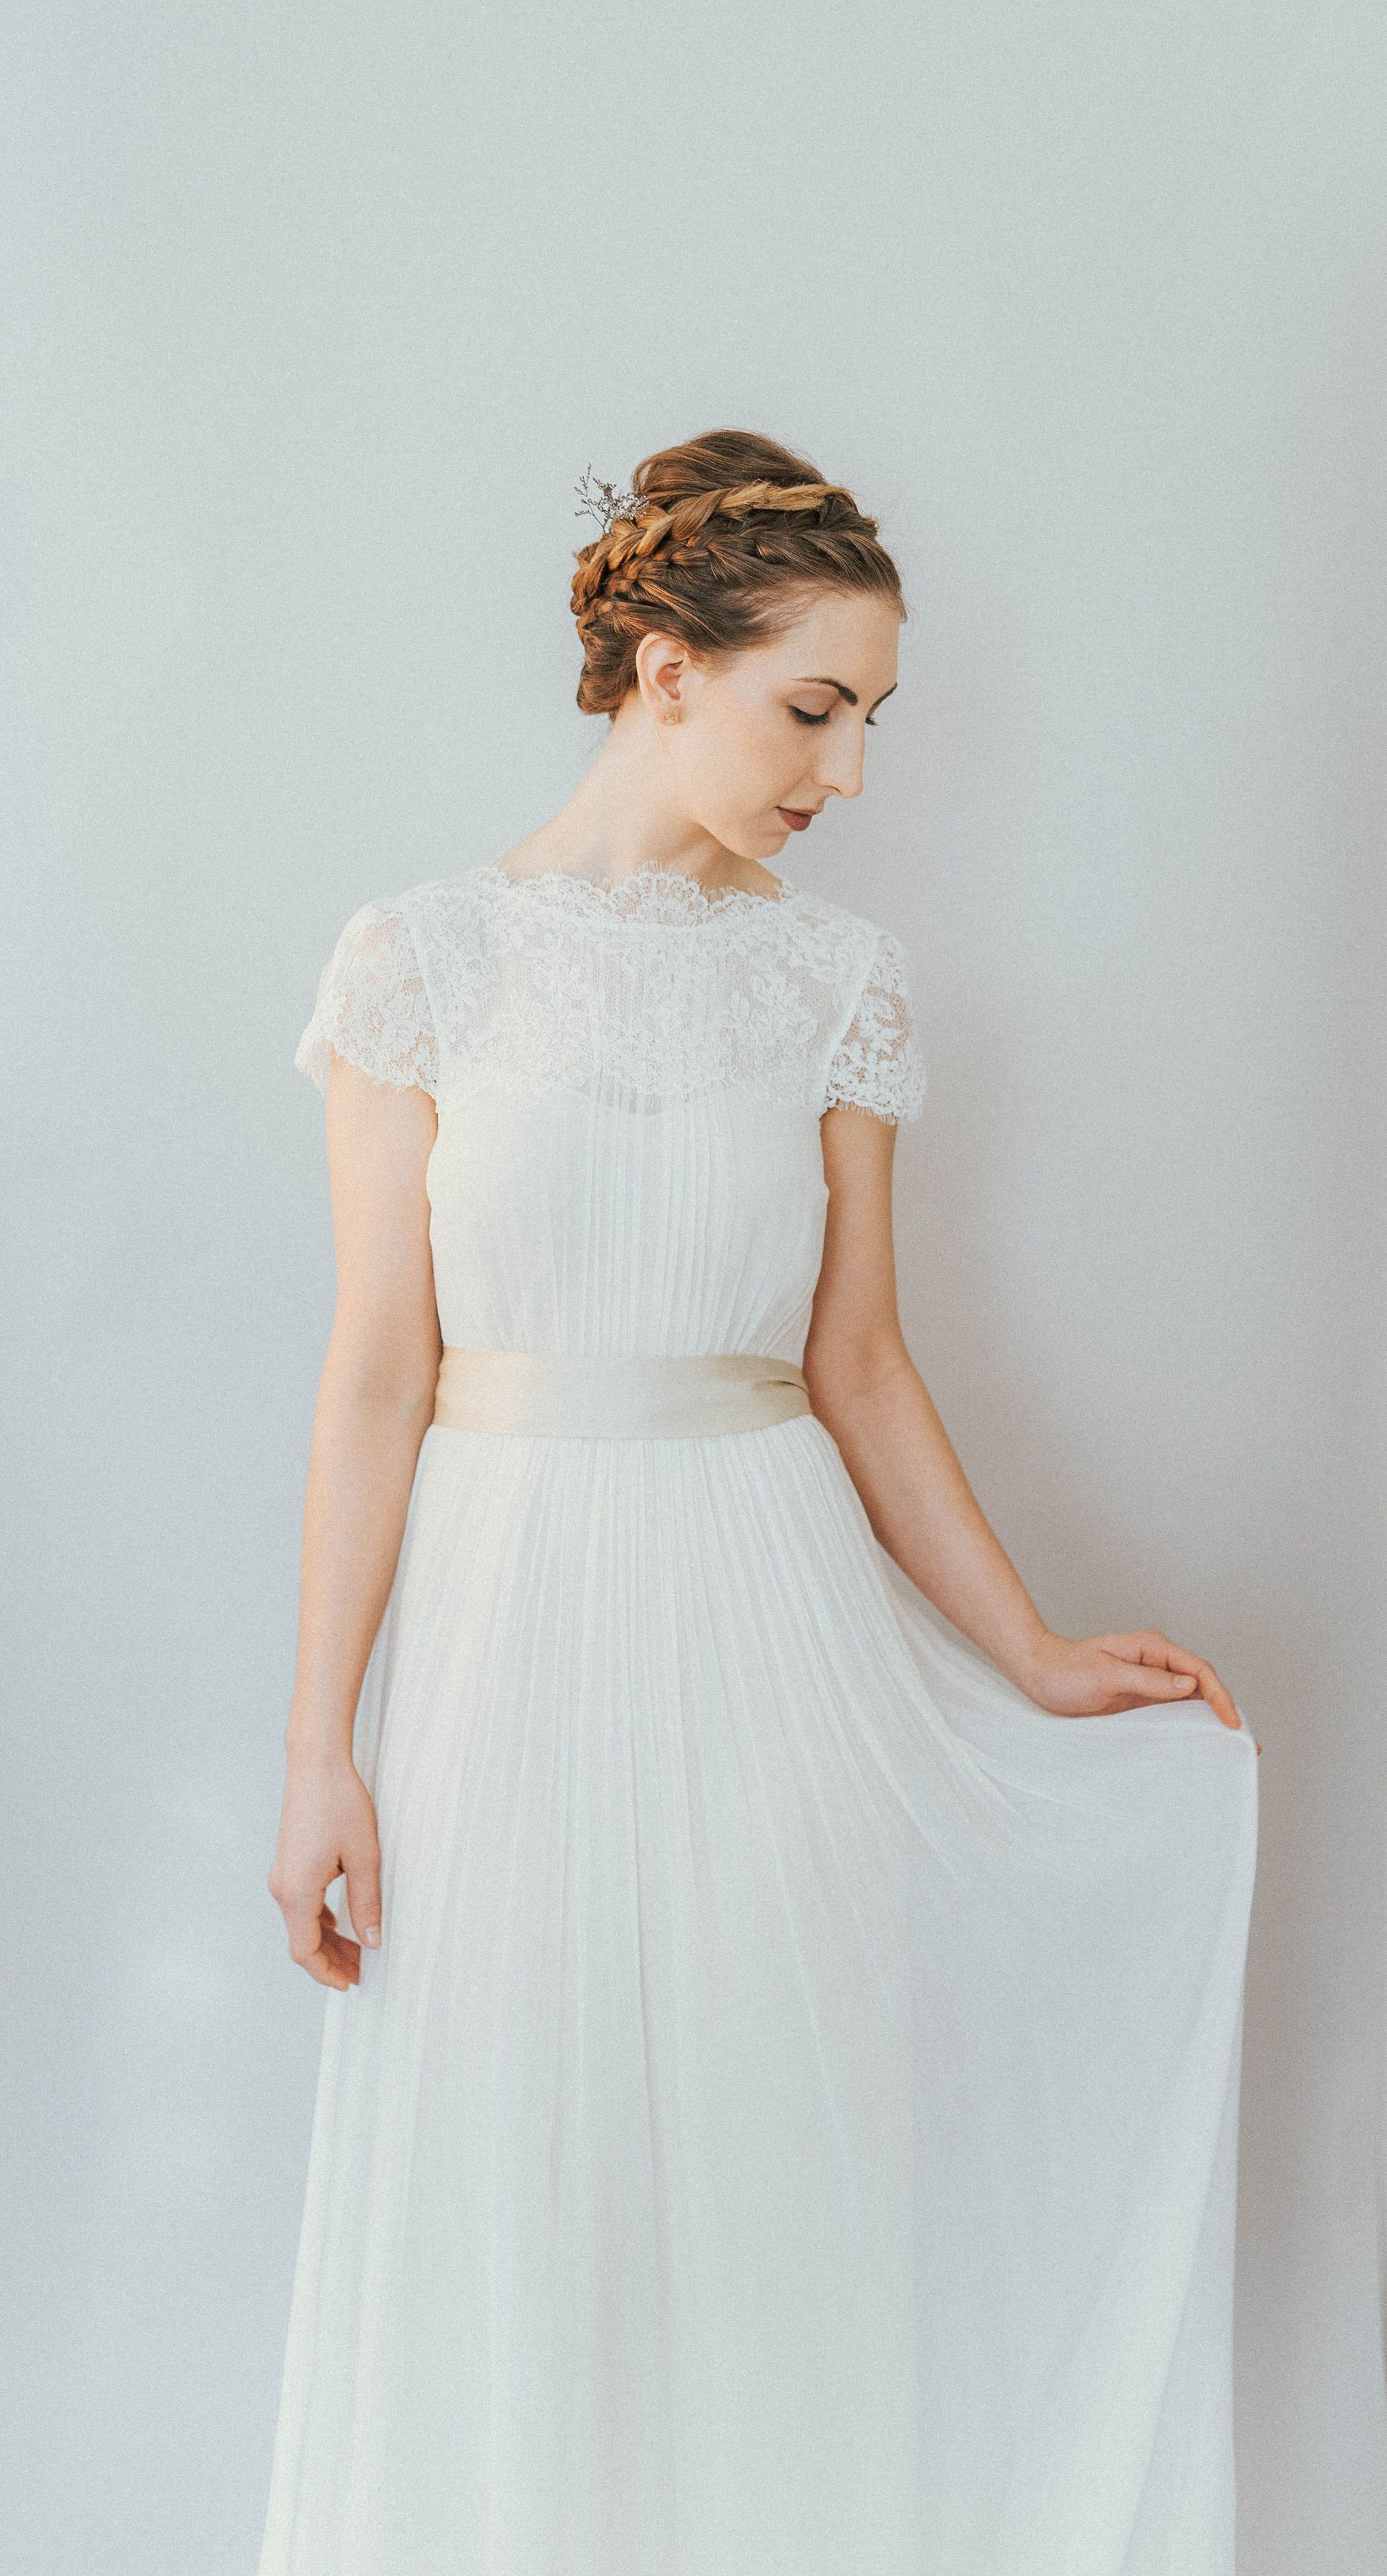 On6190 Ethereal Lace Detachable Trained Wedding Dress In